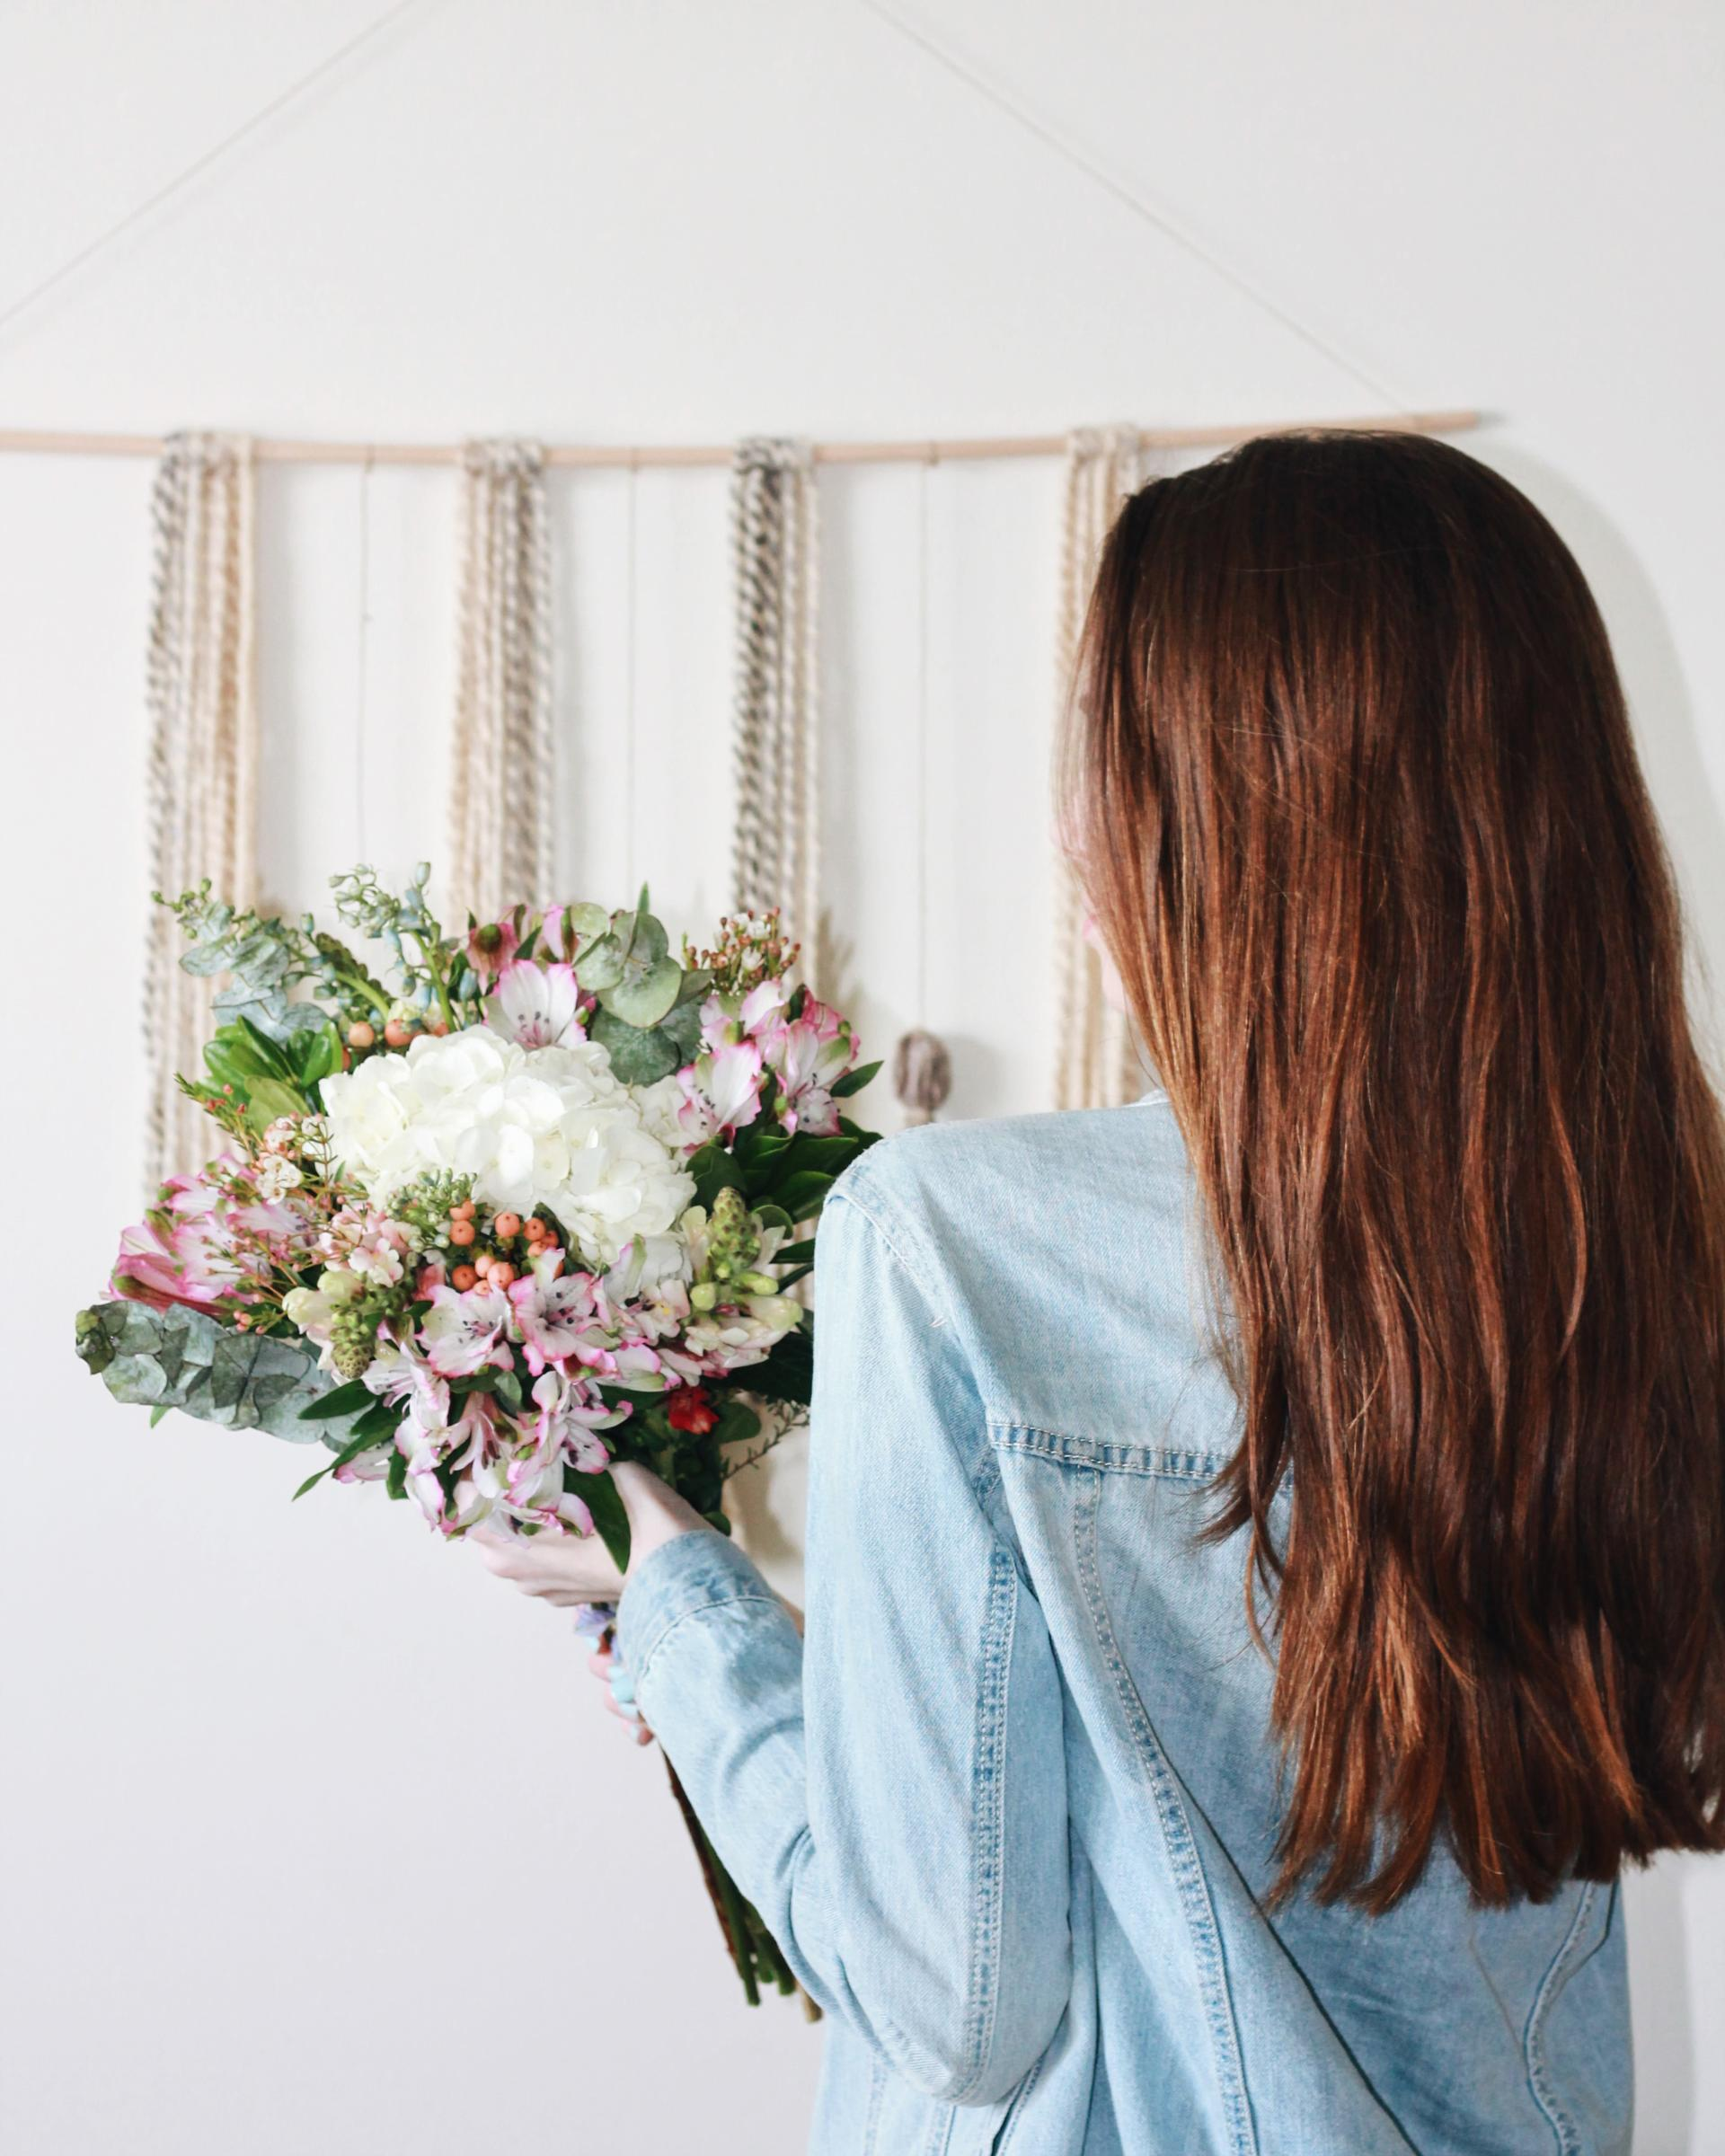 How To Make Your Own Wedding Bouquets